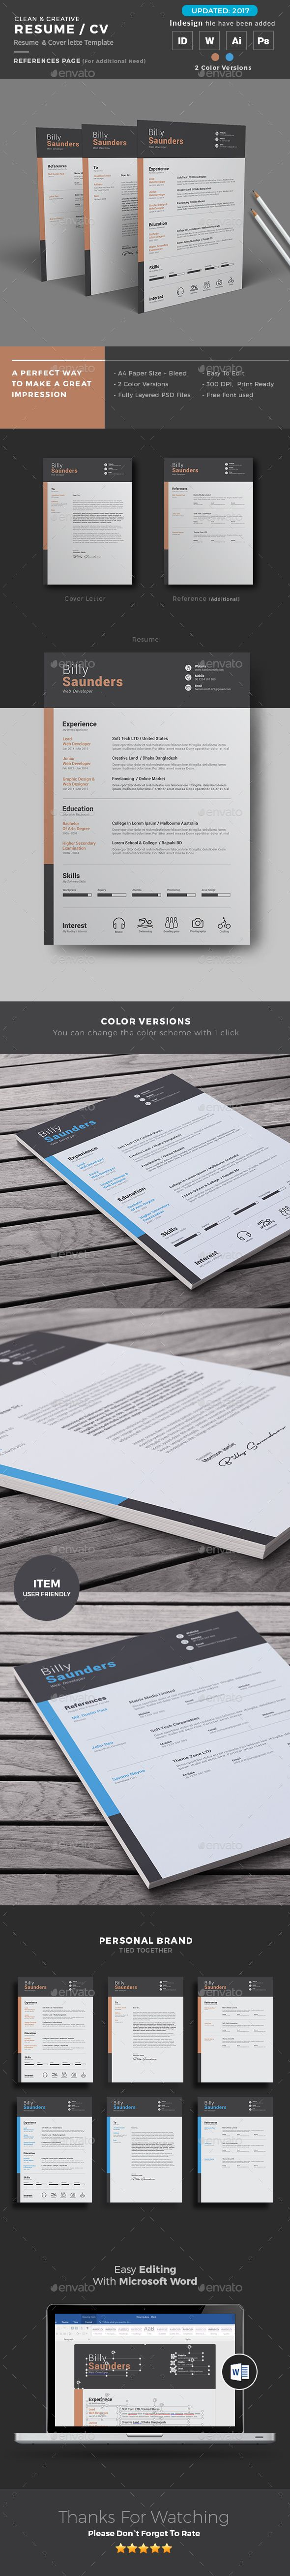 600 best Resume Design images on Pinterest   Resume, Curriculum and ...